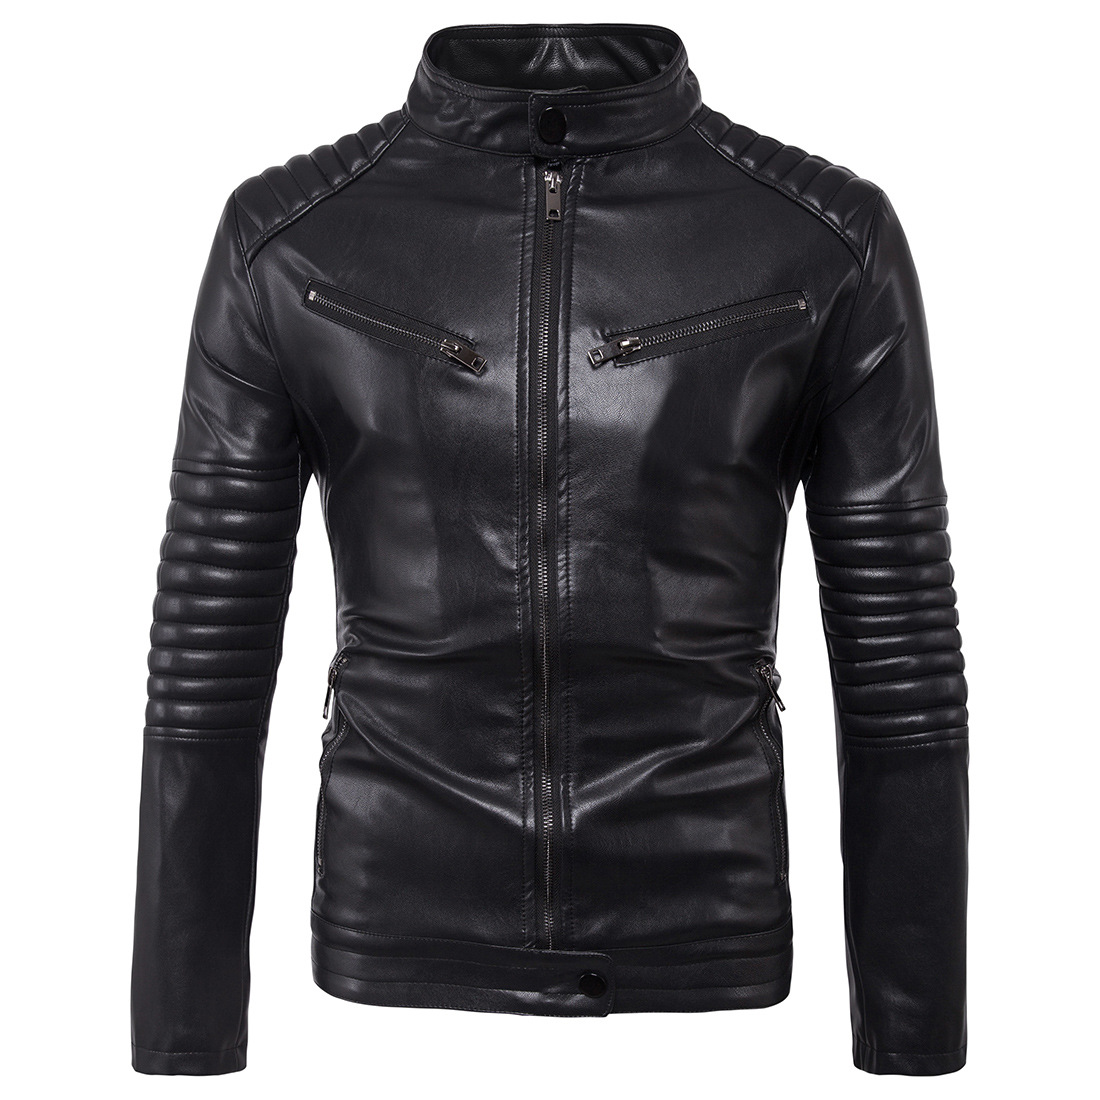 Men Jacket Autumn Slim fit Faux leather jacket Motorcycle Bomber Leather Coats Big Jacket